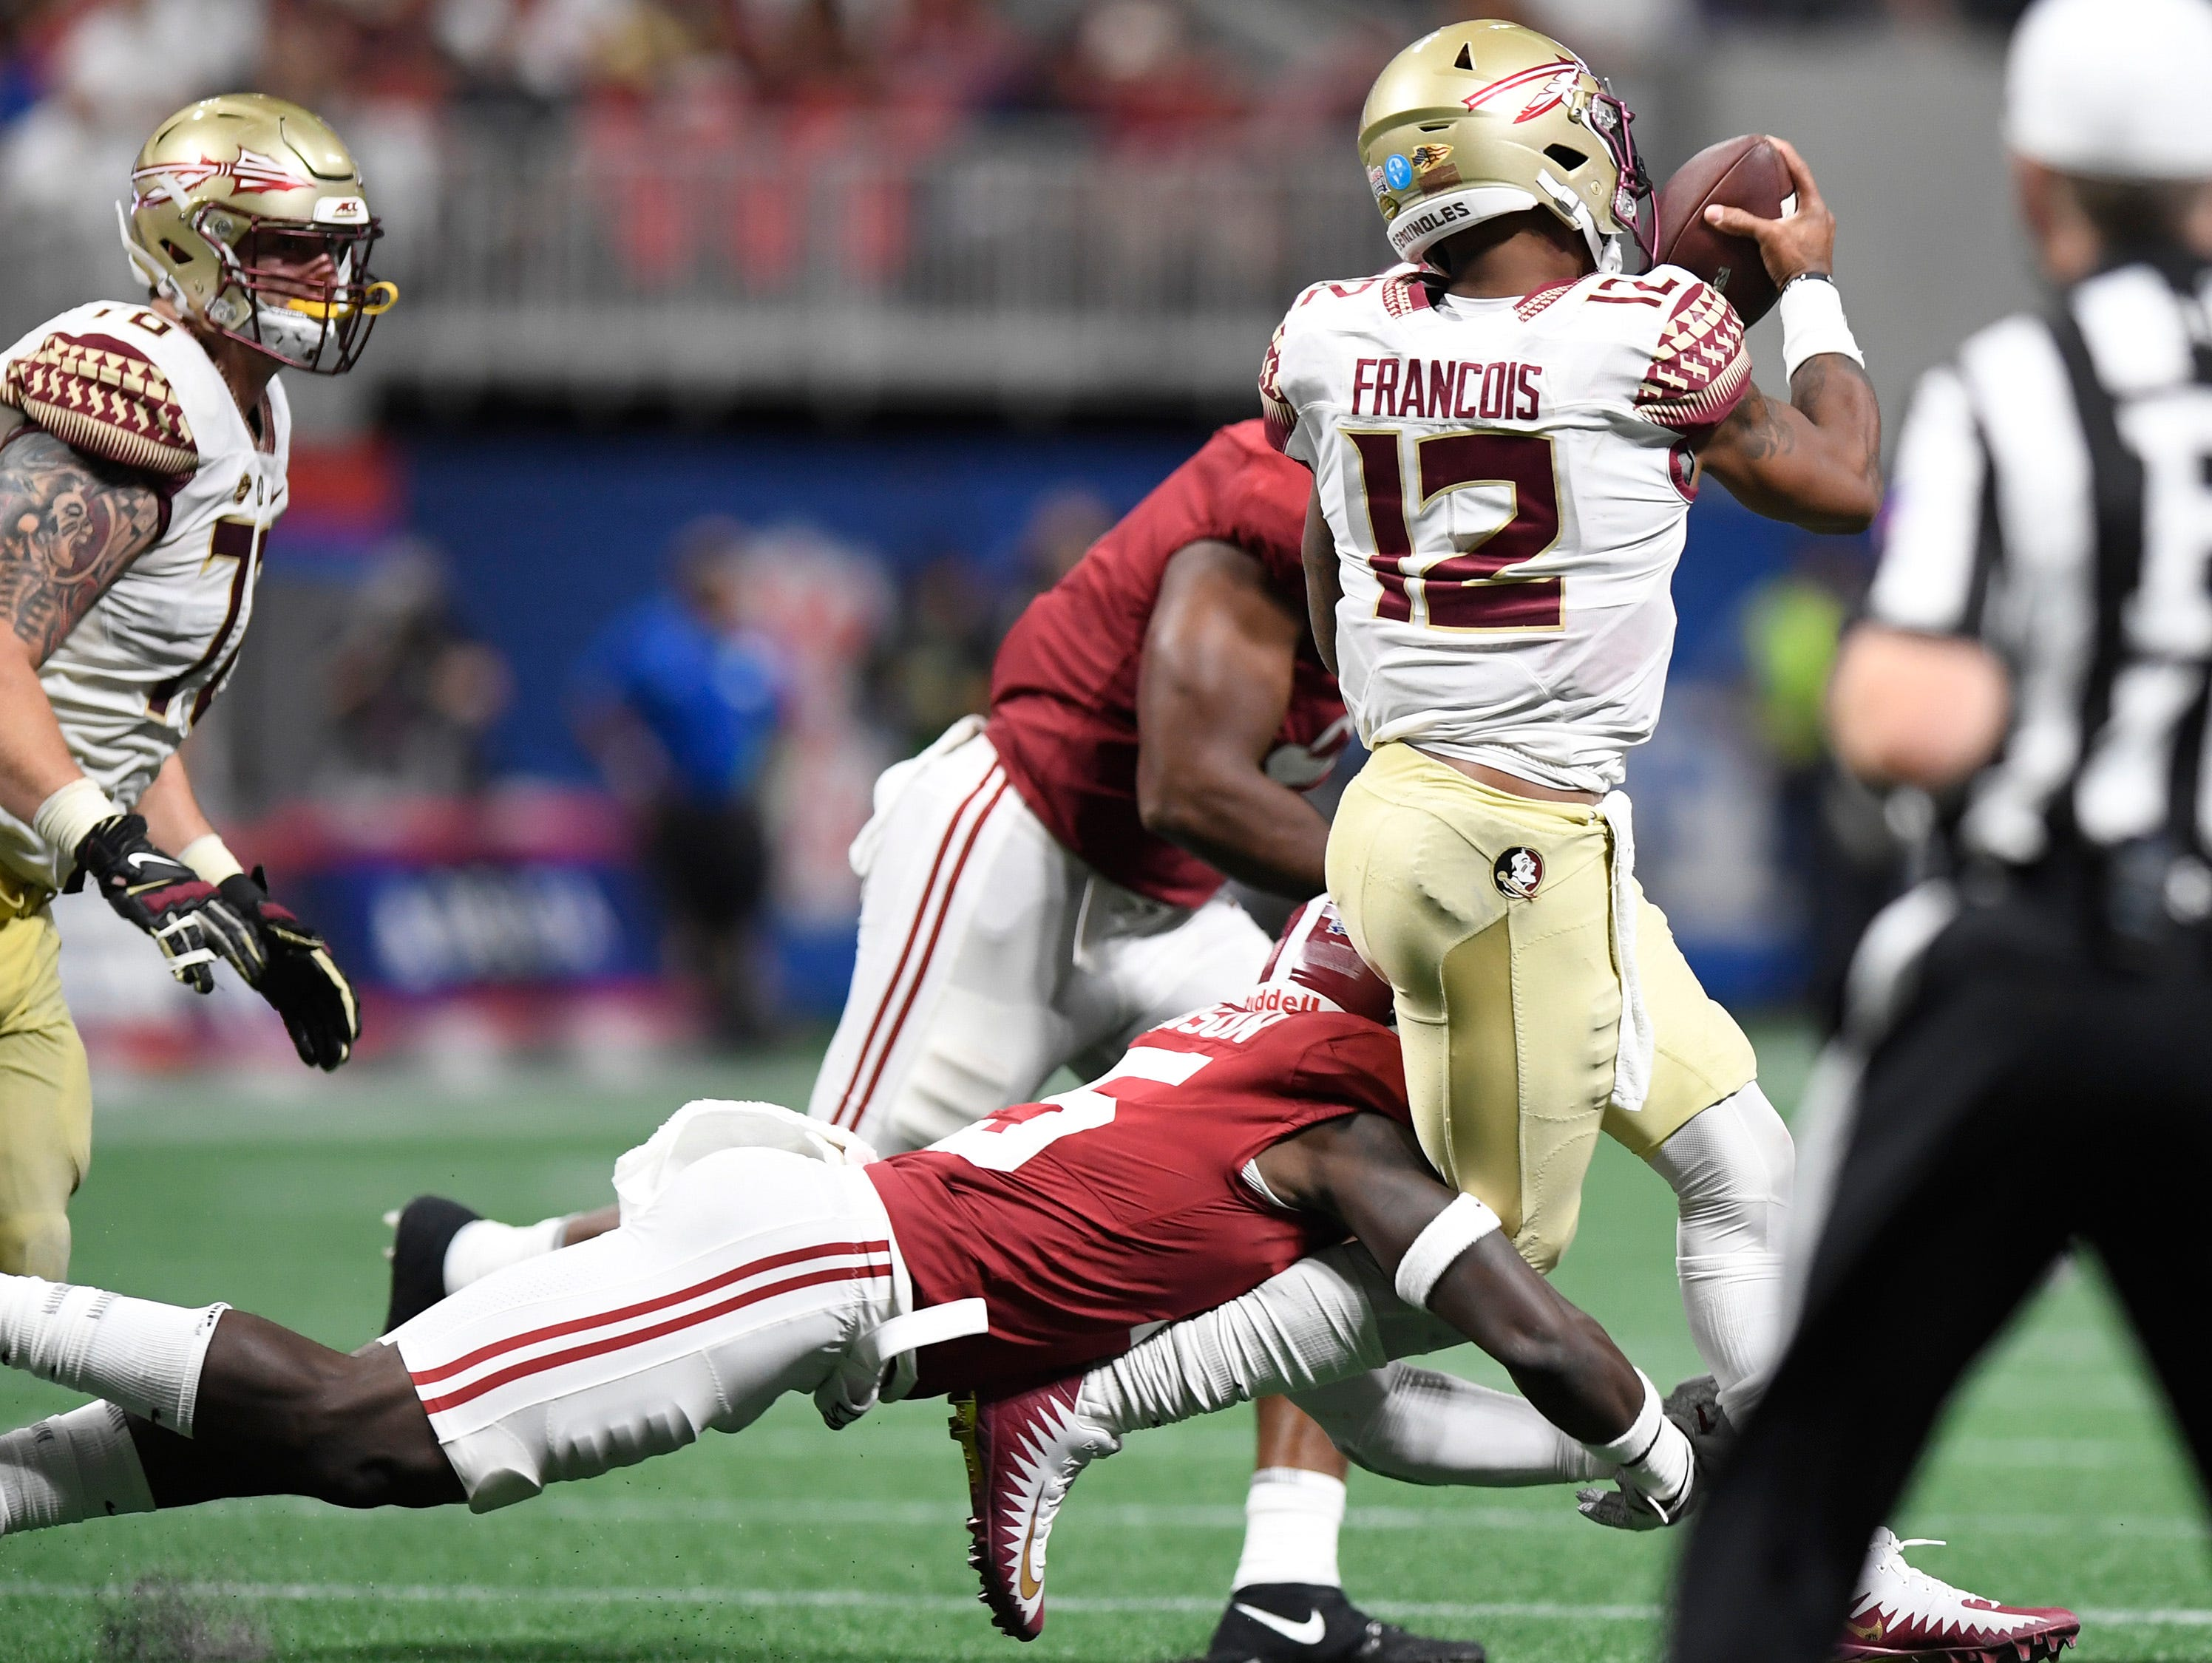 Alabama defensive back Ronnie Harrison (15) tackles Florida State quarterback Deondre Francois (12) injuring him in the Chick-fil-a Classic at the Mercedes - Benz Stadium in Atlanta, Ga., on Saturday September 2, 2017.